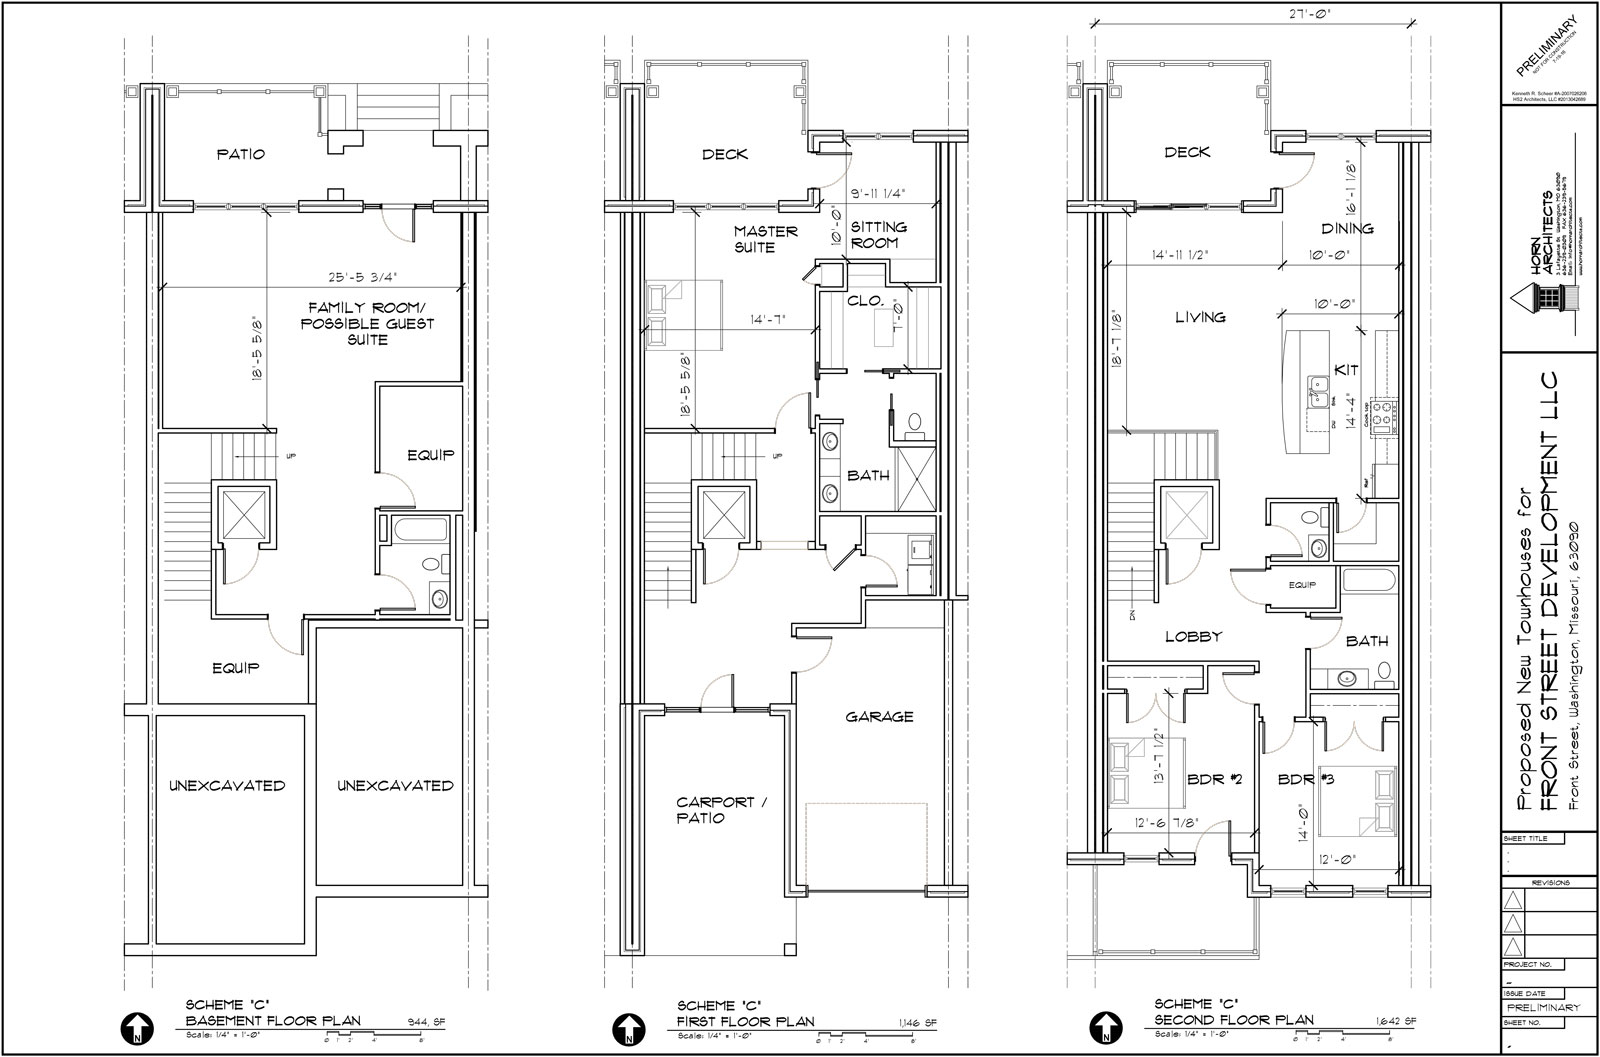 Building A Sold Town Houses 2 Story With Basement